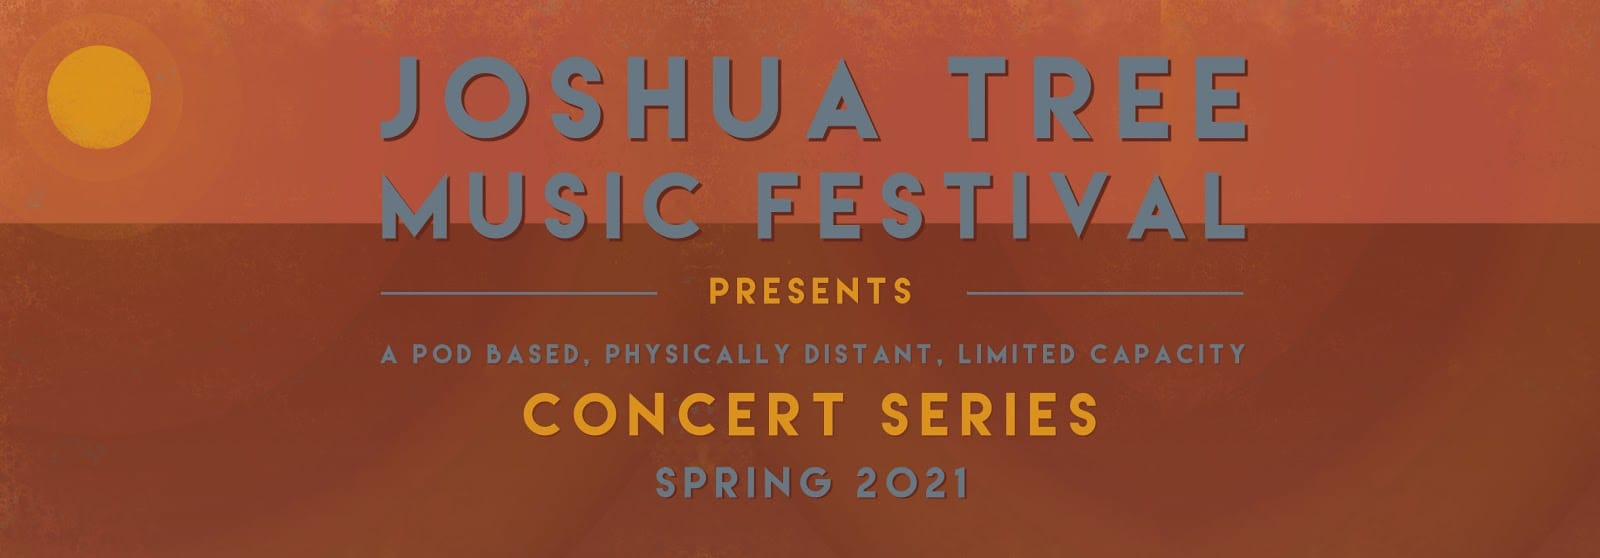 Joshua Tree Music Festival Series Announces Music is the Soul of Life